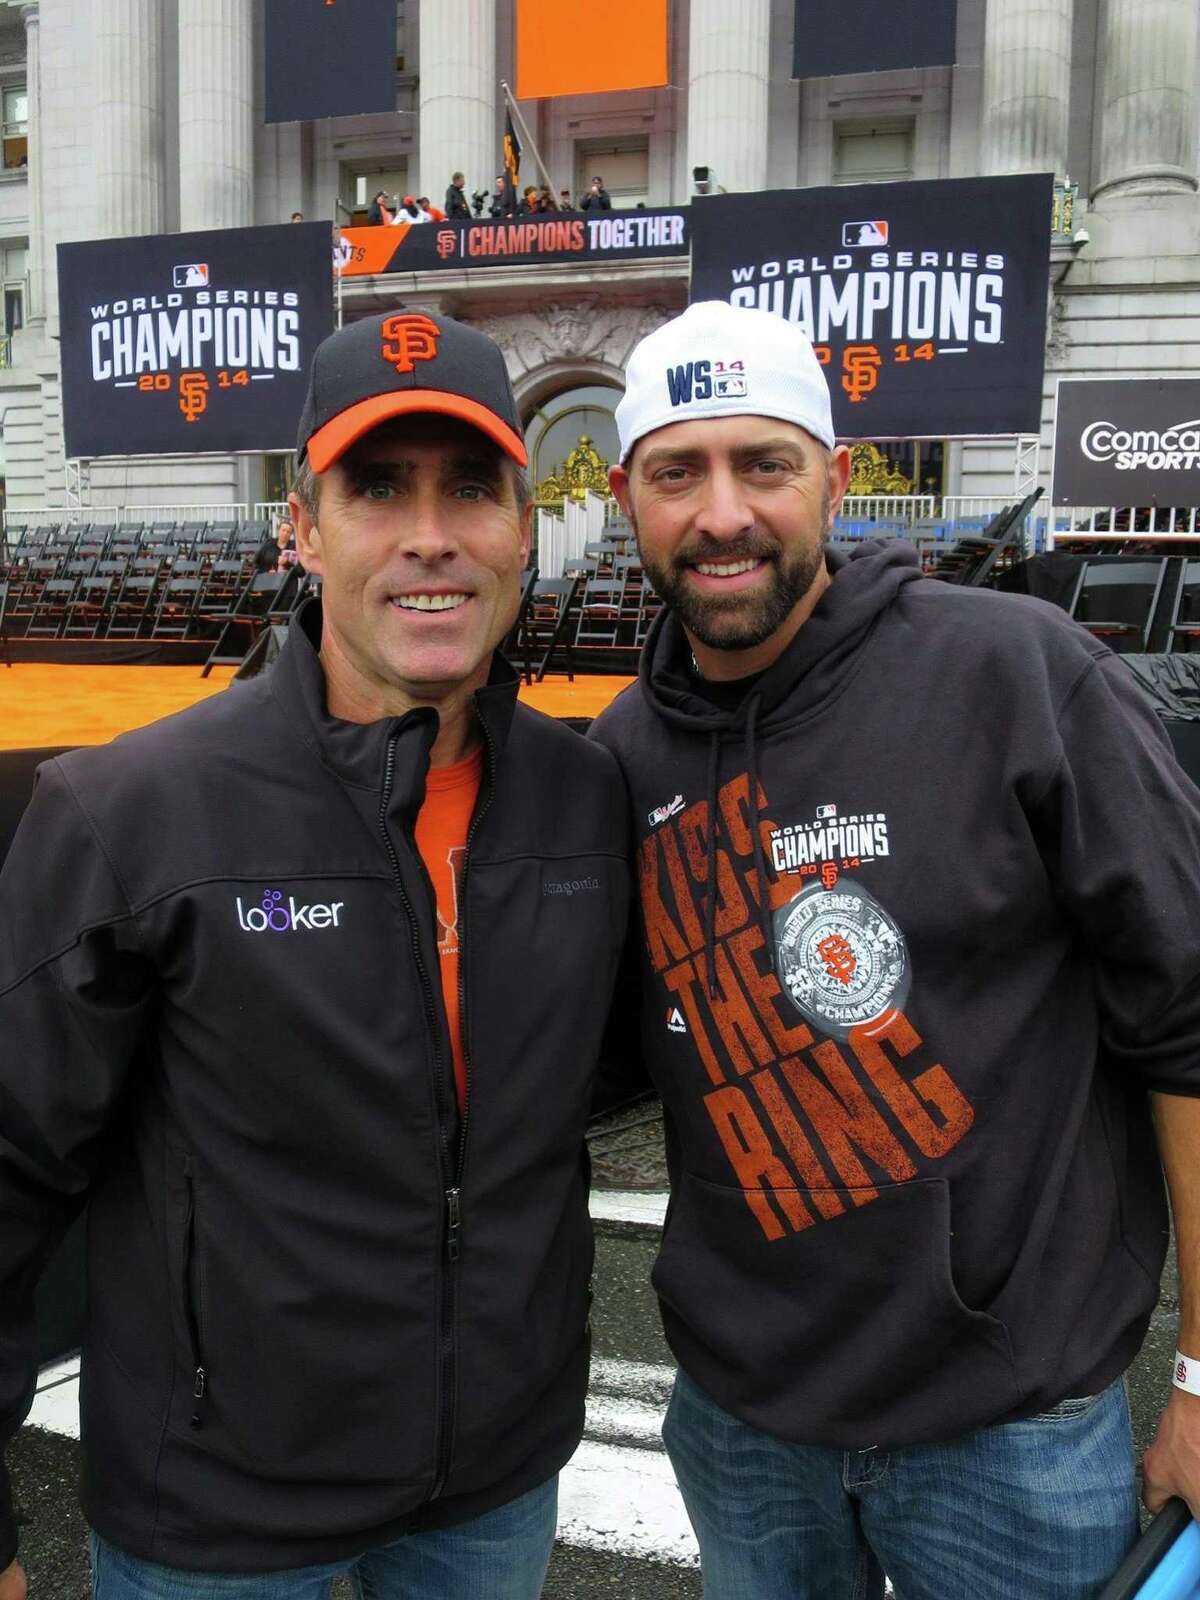 Kevin Heller (L), who served on the Lou Gehrig Day Committee, poses for a photo with former San Francisco Giants pitcher Jeremy Affeldt. (Photo Courtesy of the Heller Family)